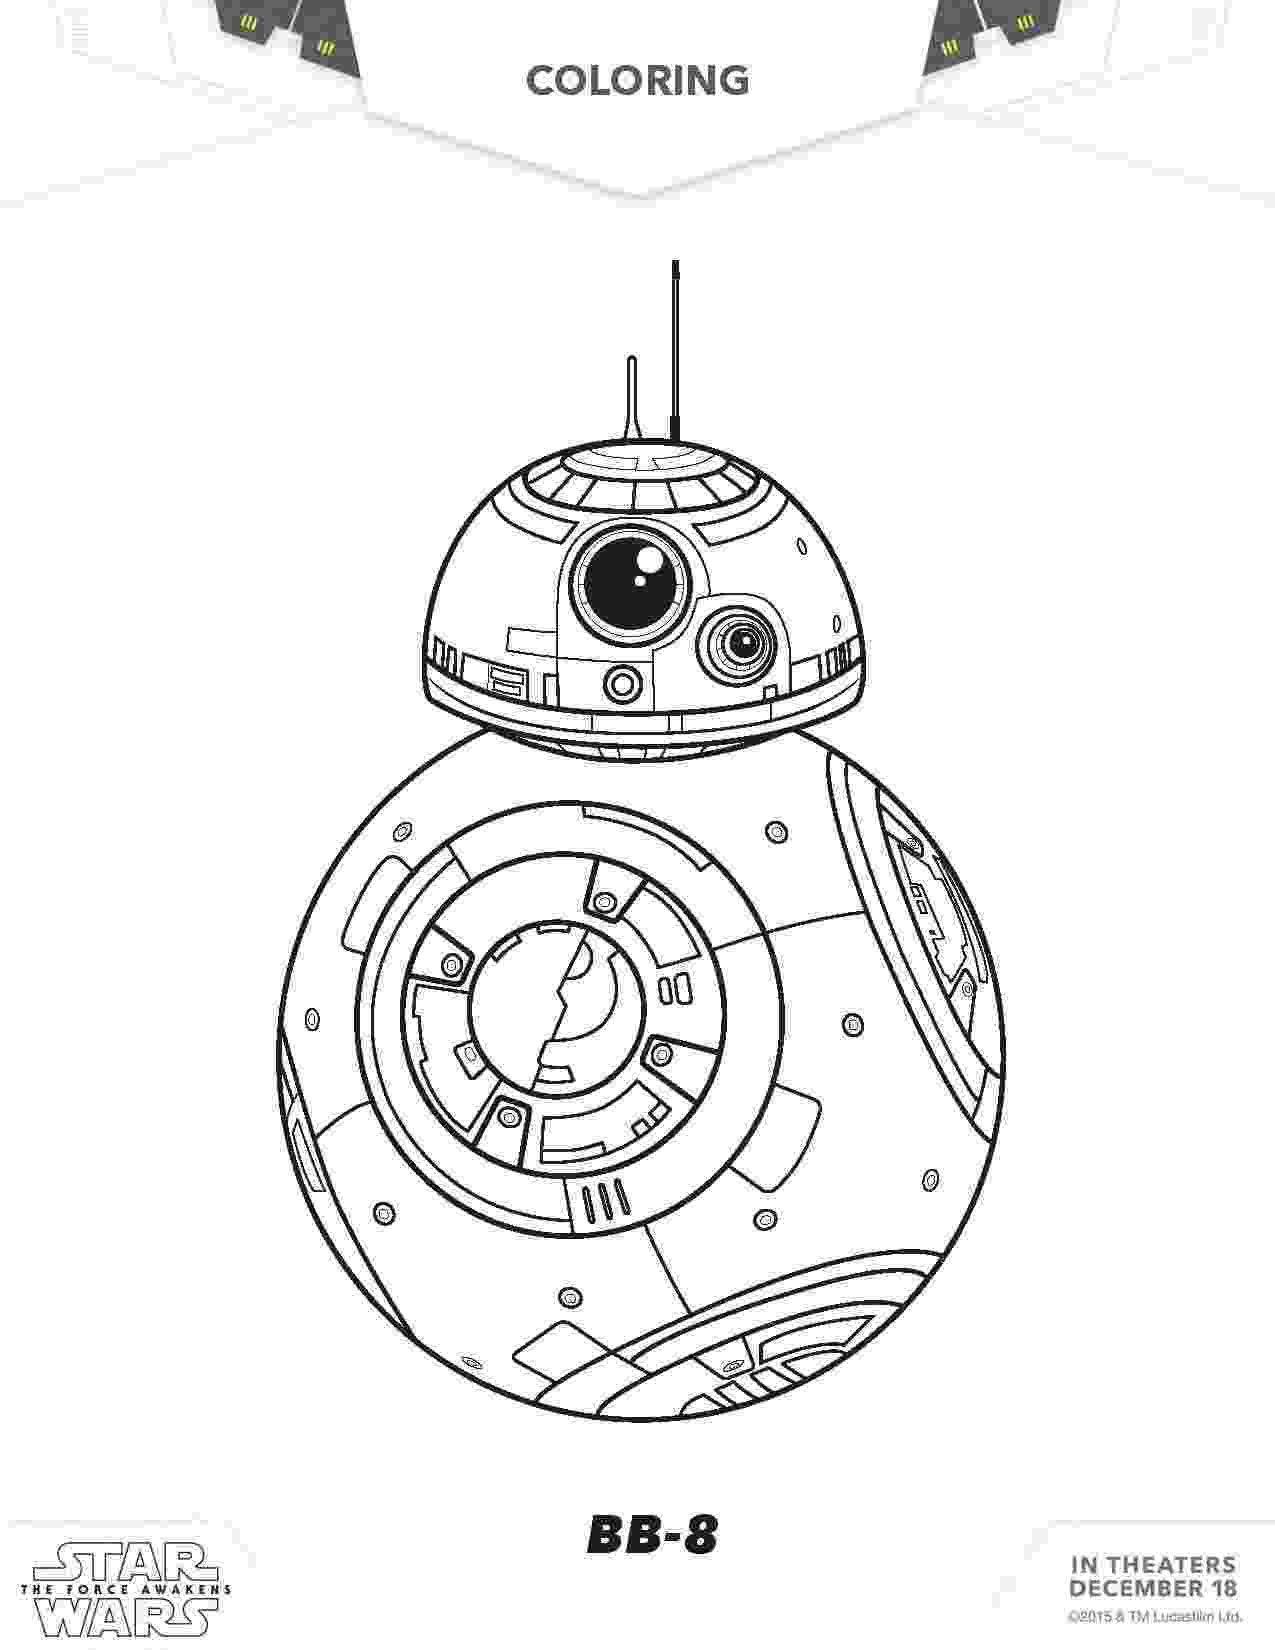 star wars print out coloring pages star wars coloring pages 2018 dr odd star print out coloring pages wars